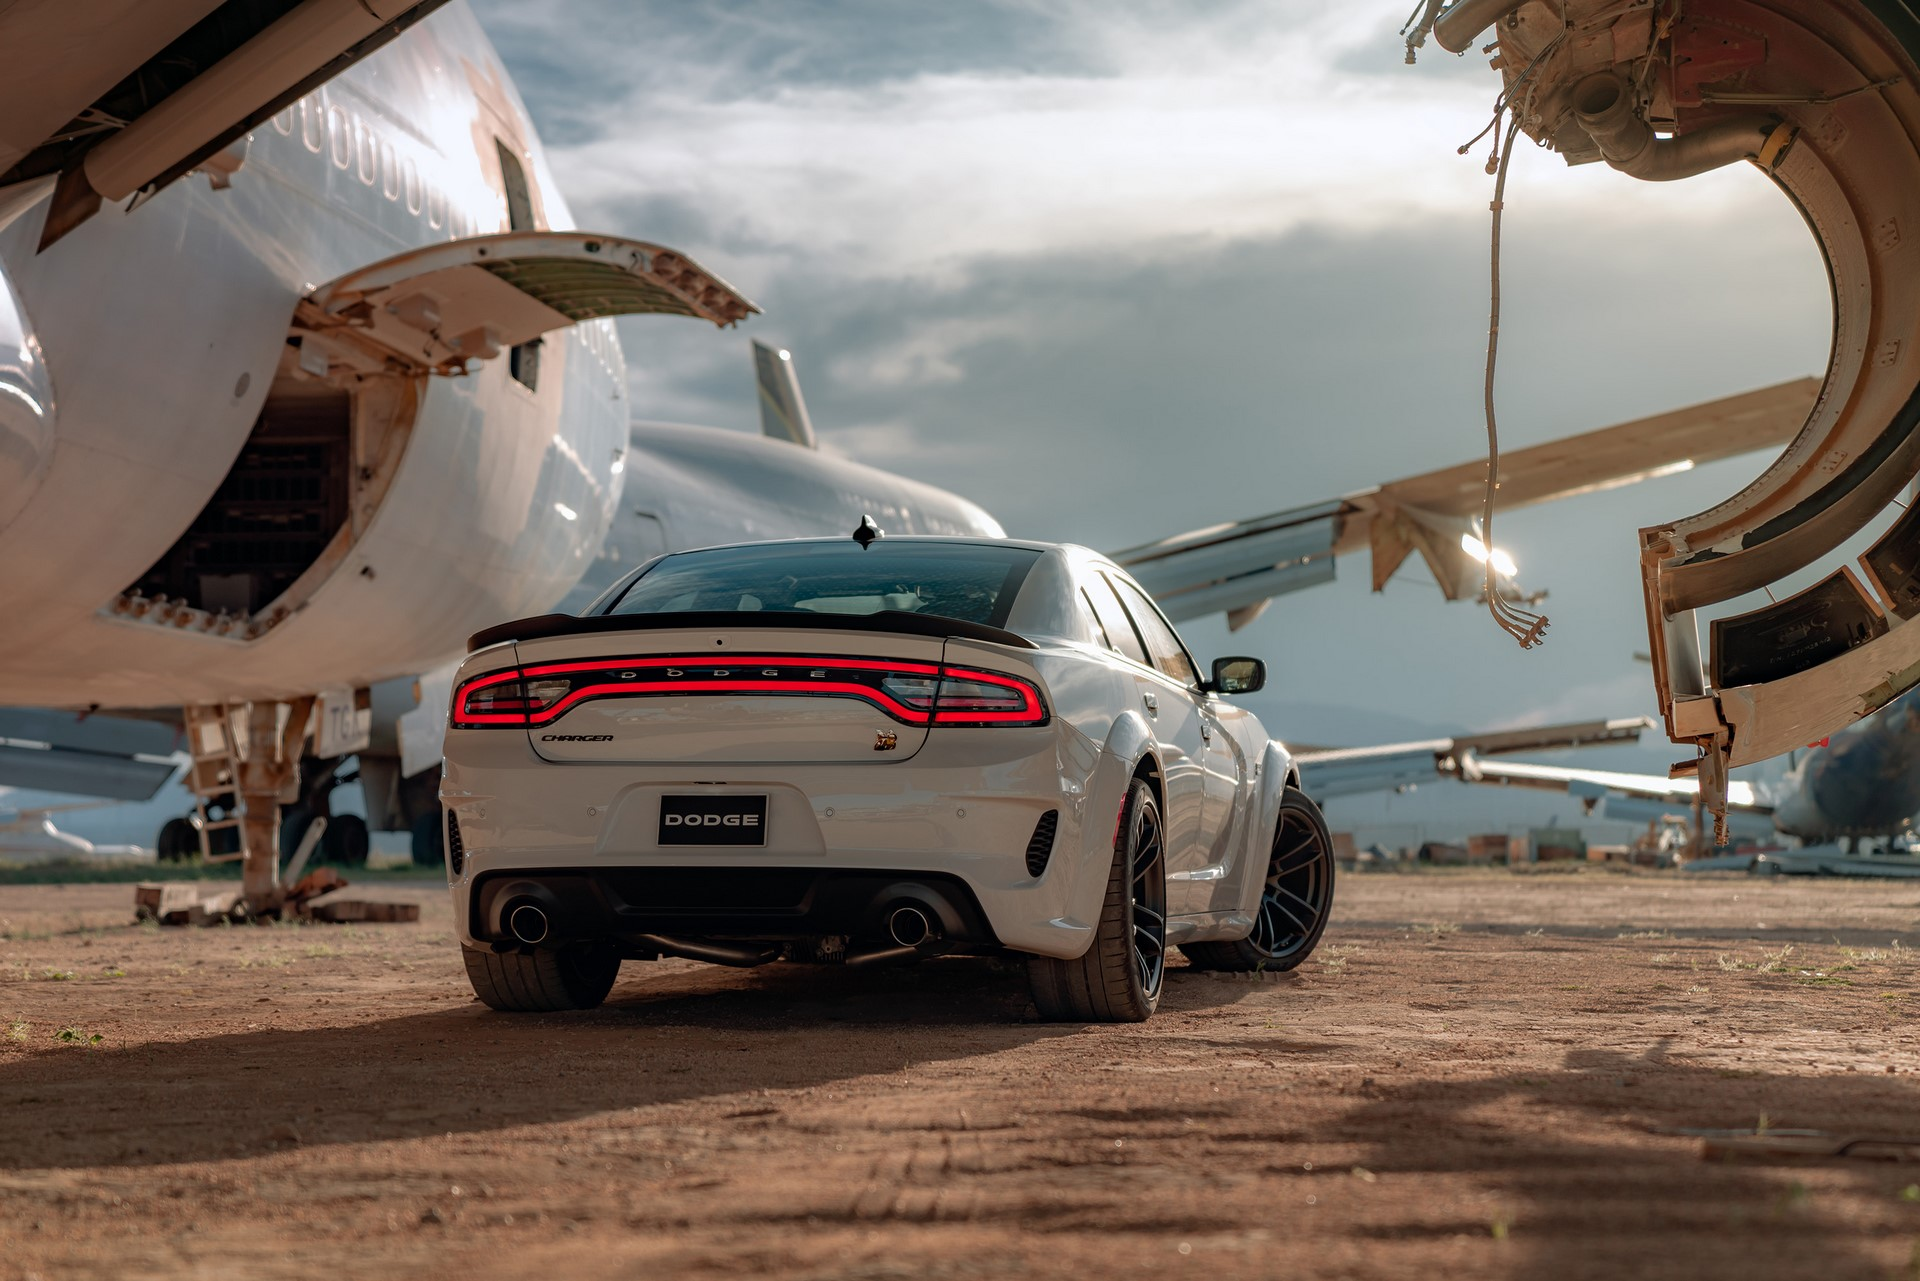 The 2020 Dodge Charger Scat Pack Widebody features a best-in-class, naturally aspirated 485-horsepower from the proven 392 cubic inch HEMI® V-8 engine